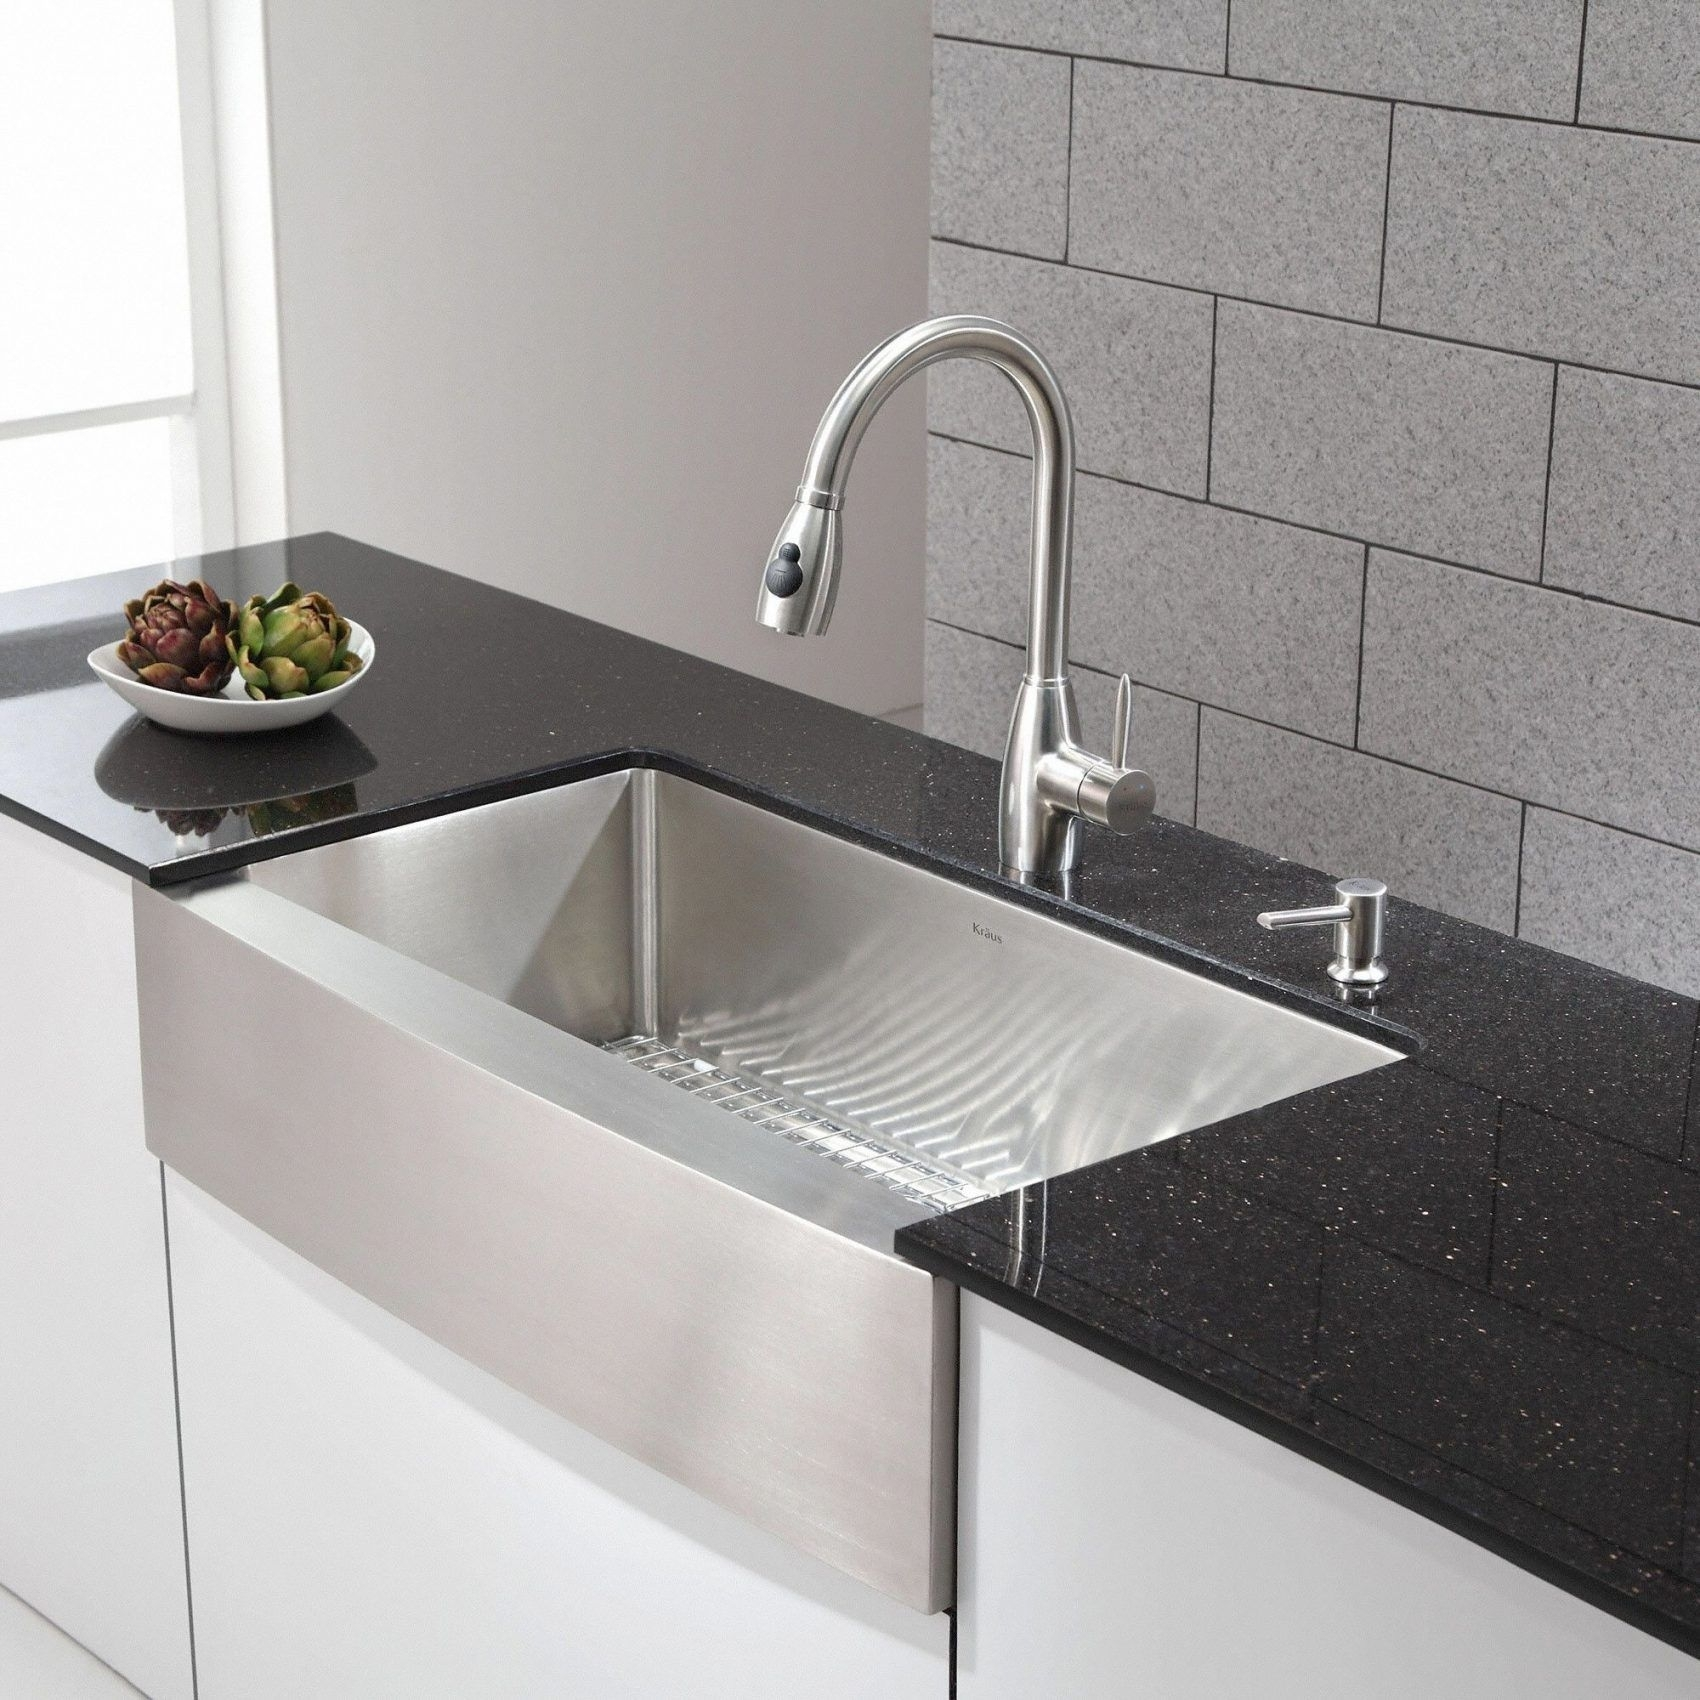 Commercial Kitchen Sink Faucet Parts